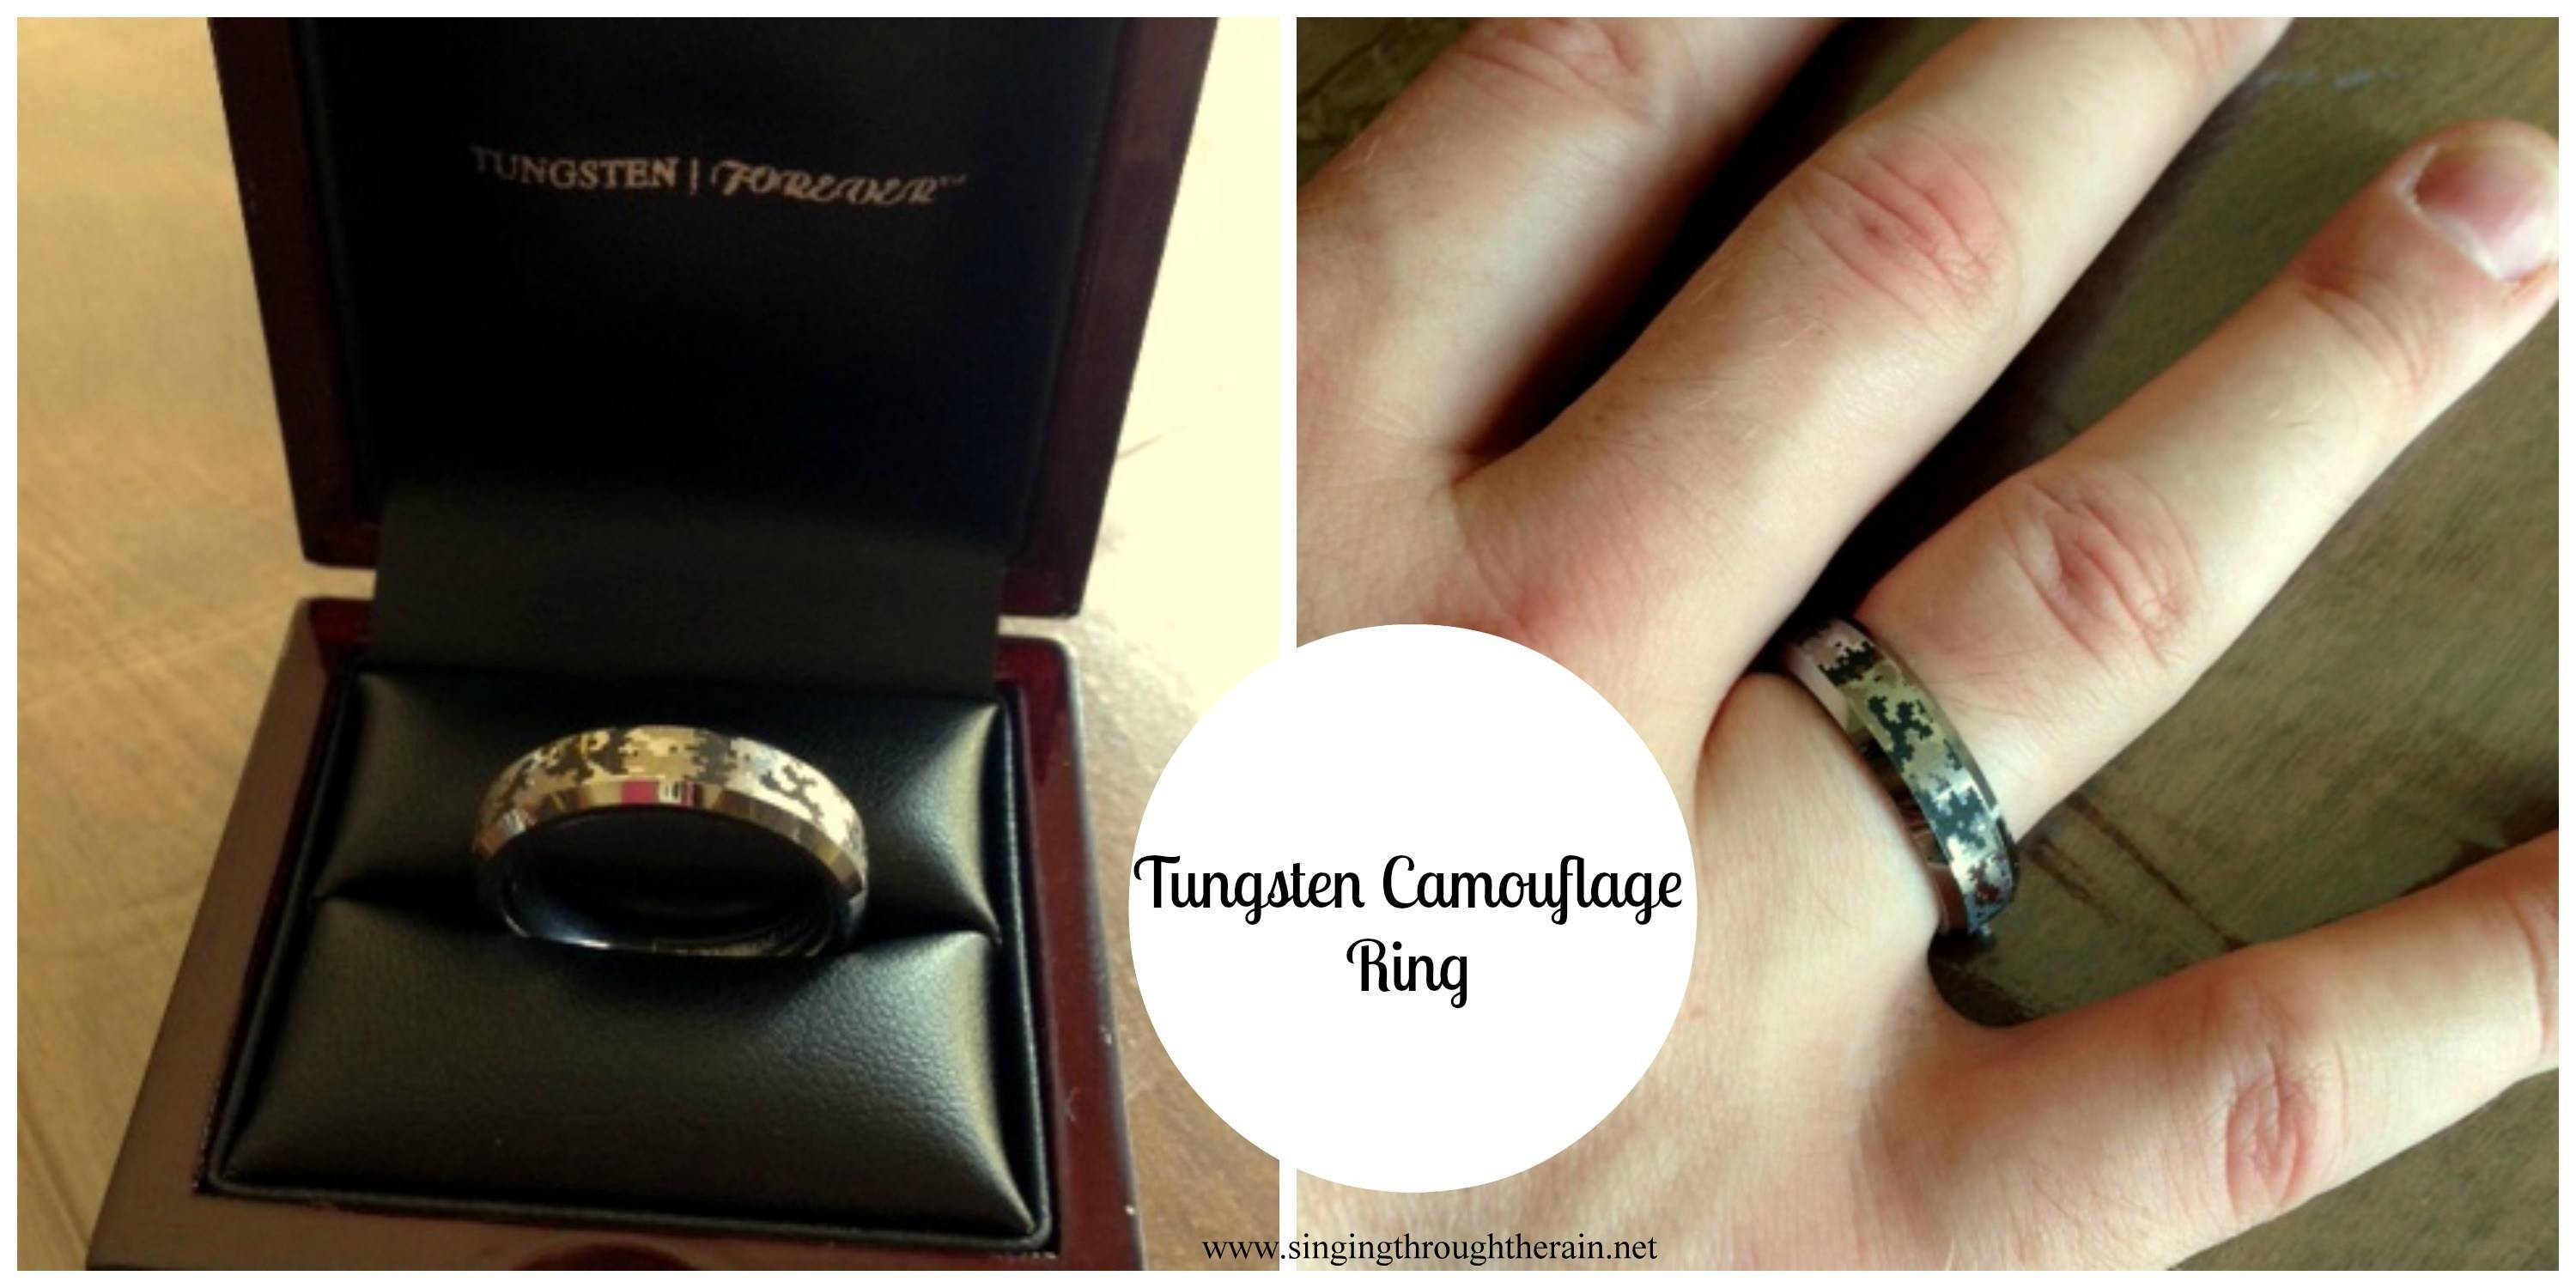 Tungsten Camouflage Ring For Military Men | Singing Through The Rain Regarding Military Wedding Rings (View 9 of 15)